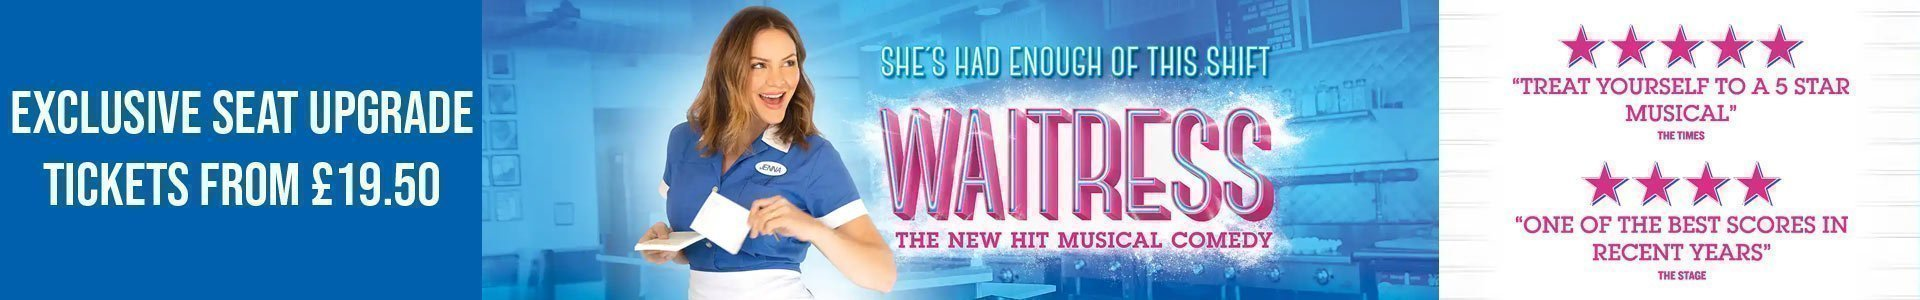 Waitress The Musical - Exclusive Offer